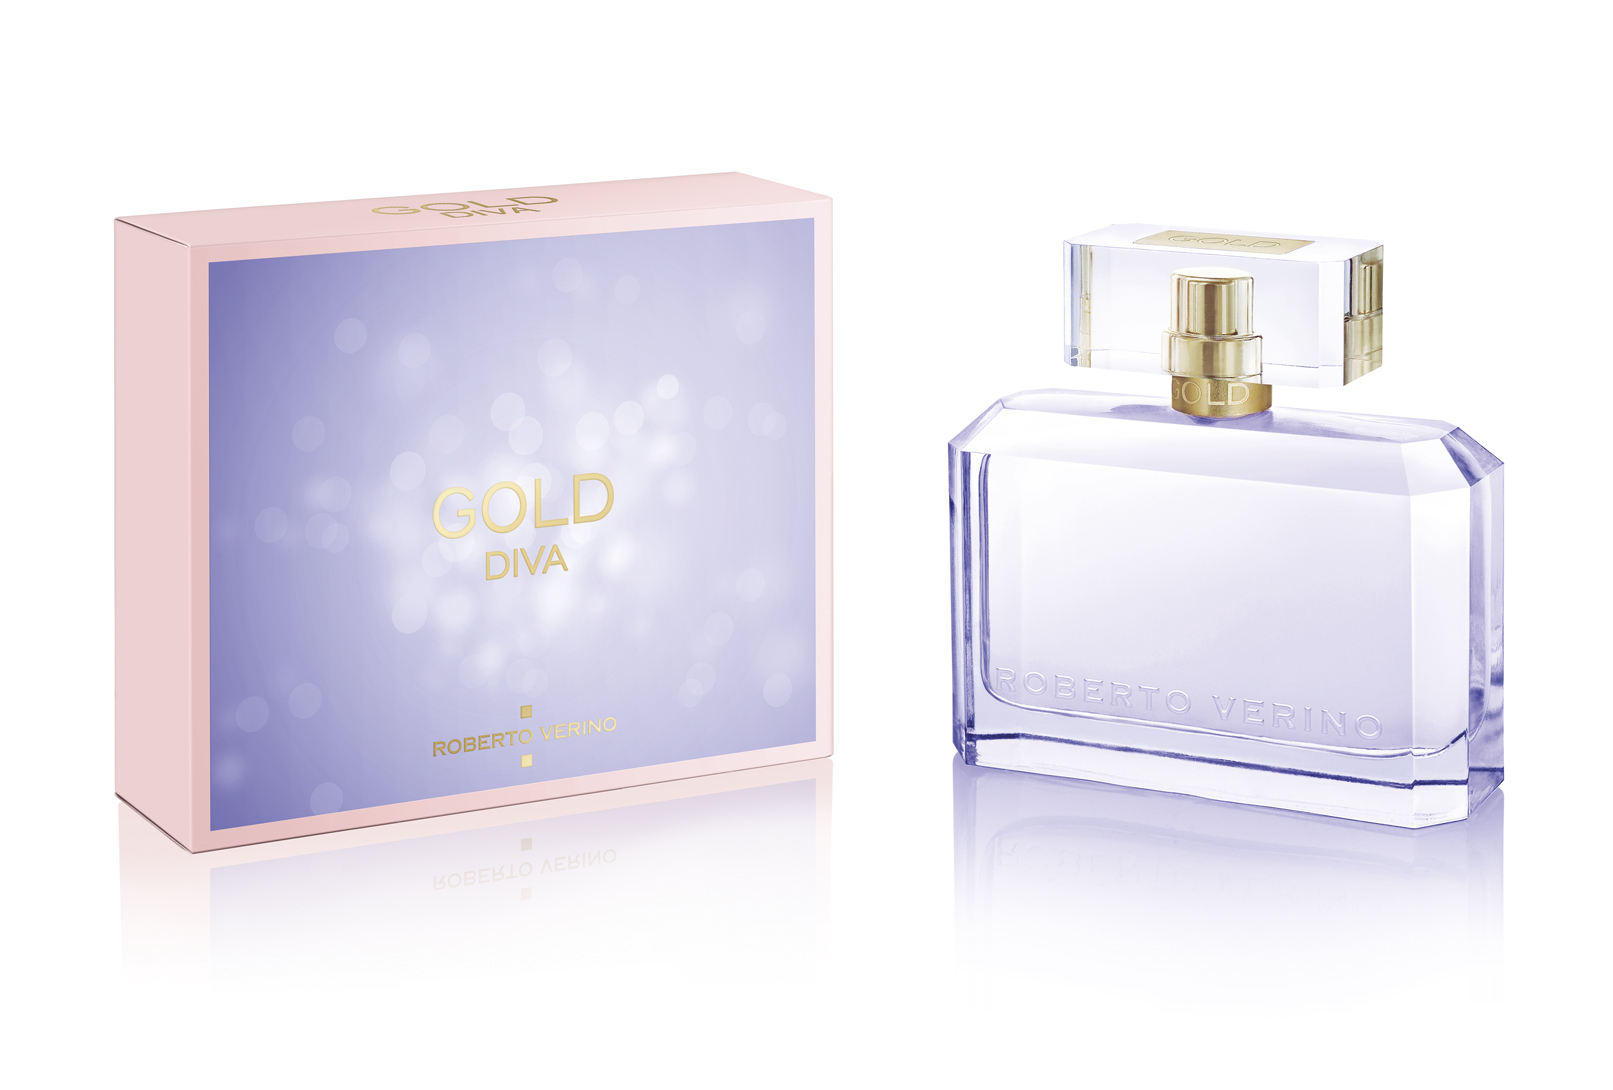 ROBERTO VERINO GOLD DIVA EDP 50 ML